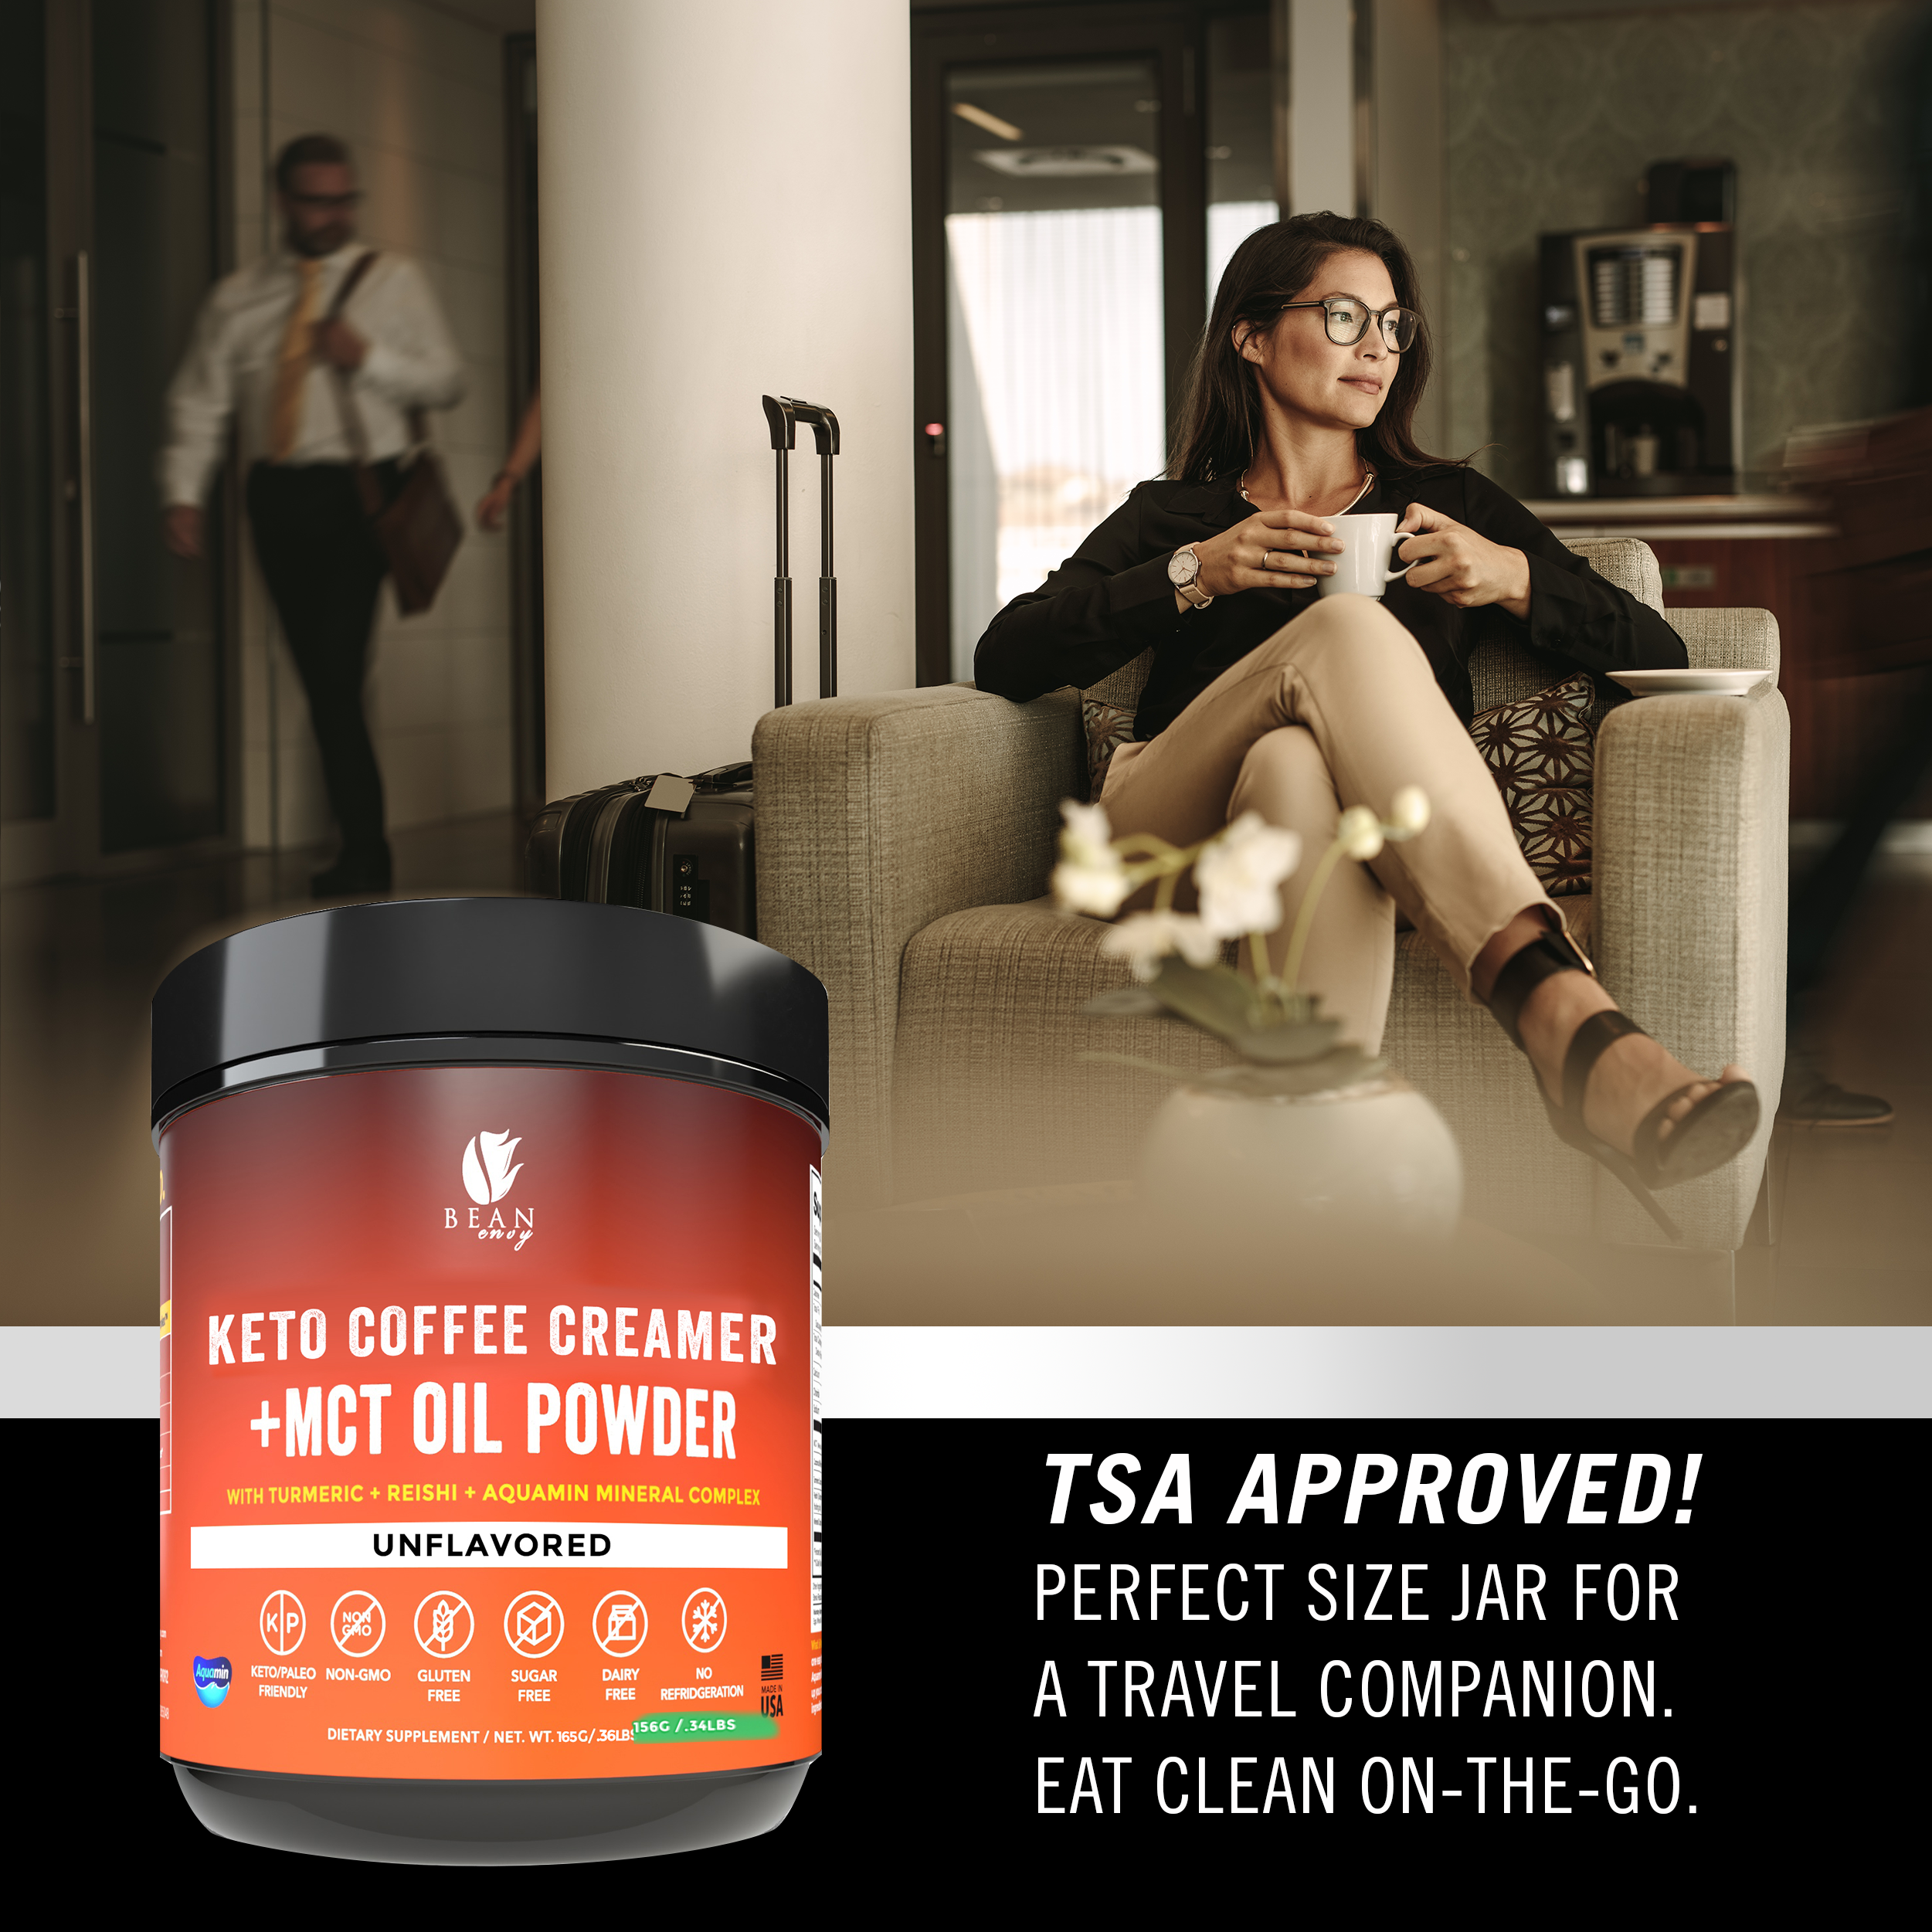 Bean Envy Keto Coffee Creamer - Coconut Milk Powder + MCT Oil Powder - Superfood Blend for Energy & Immunity Boost. Perfect for Keto, Stress management and Joint Mobility Support